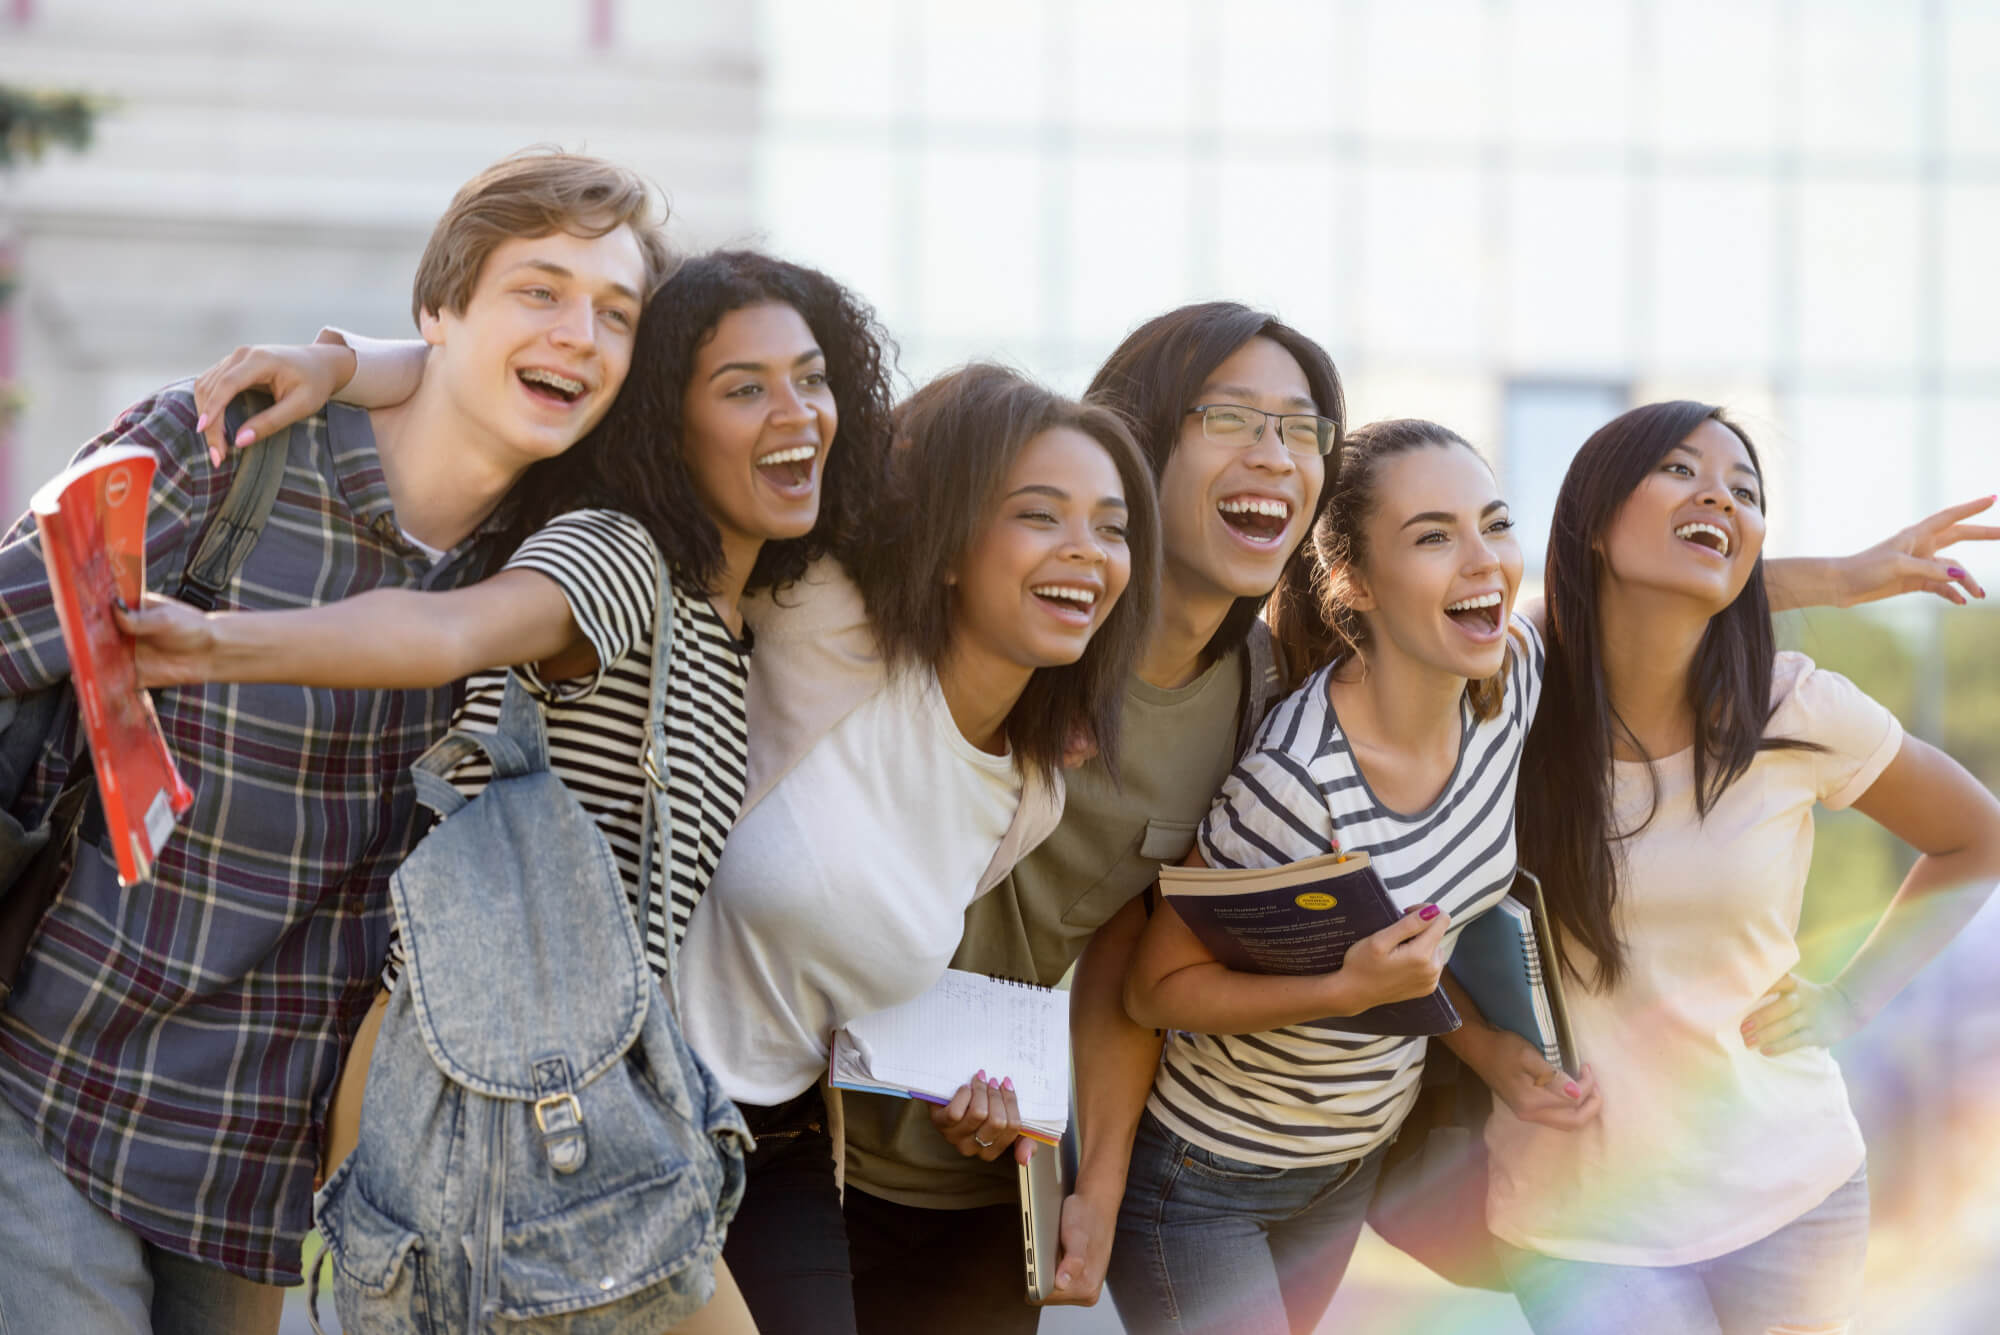 Photo of a group of people laughing together